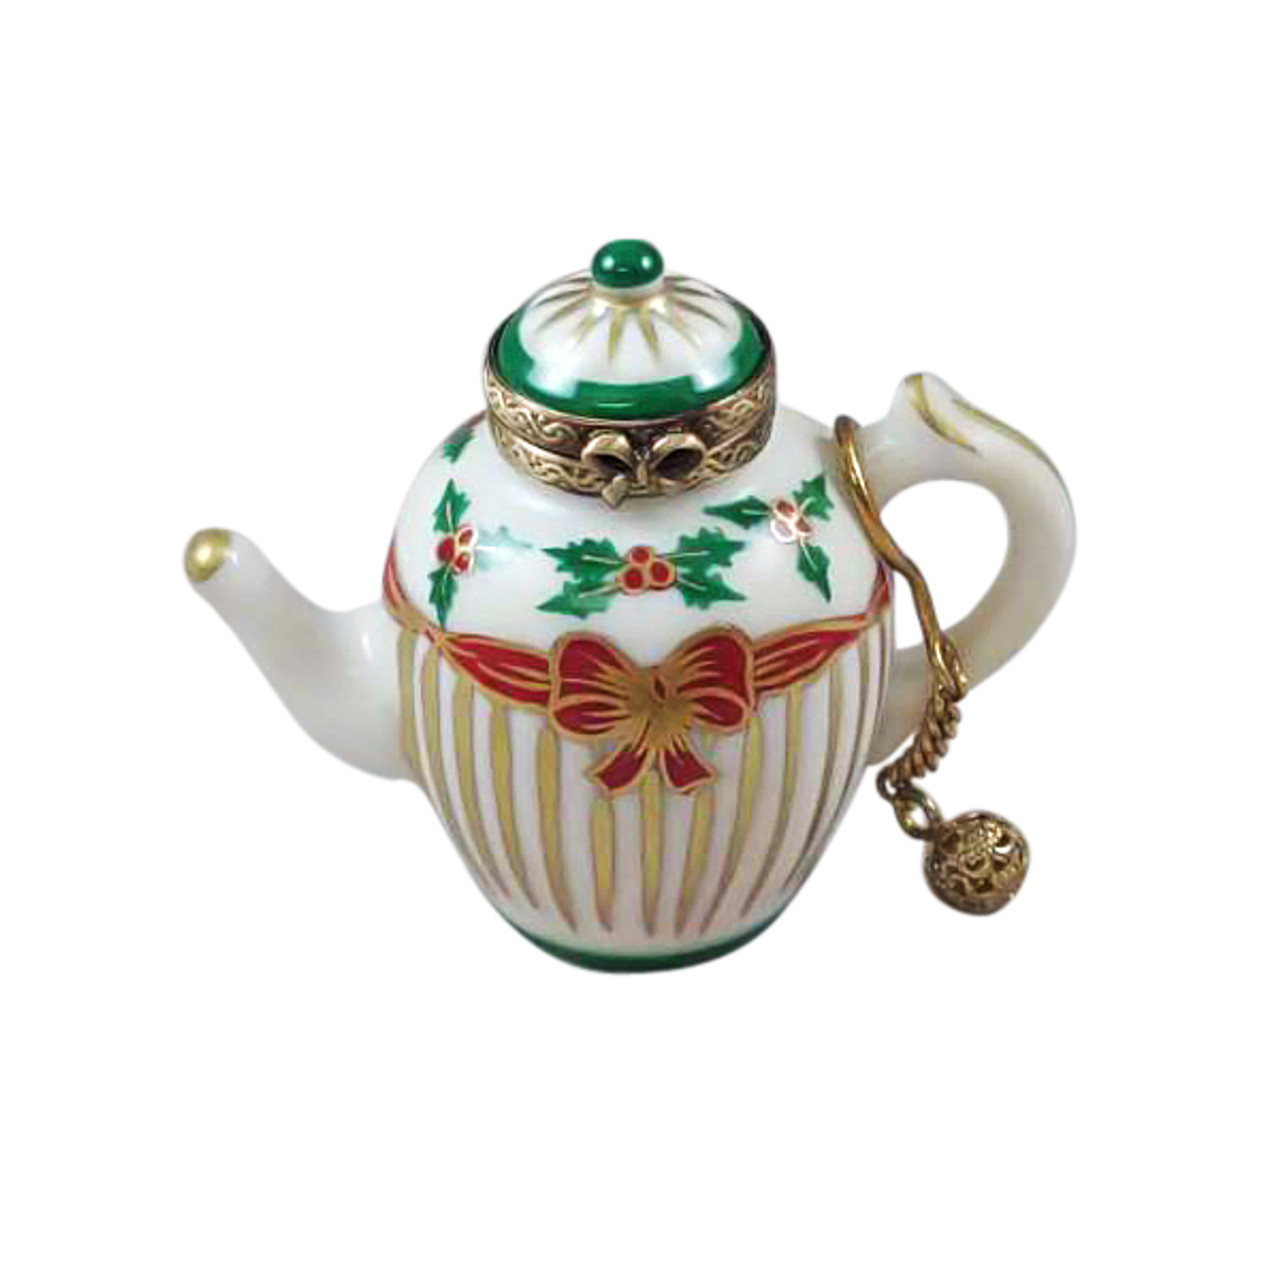 CHRISTMAS TEAPOT W/ METAL TEABALL Limoges Box (RX214-I)